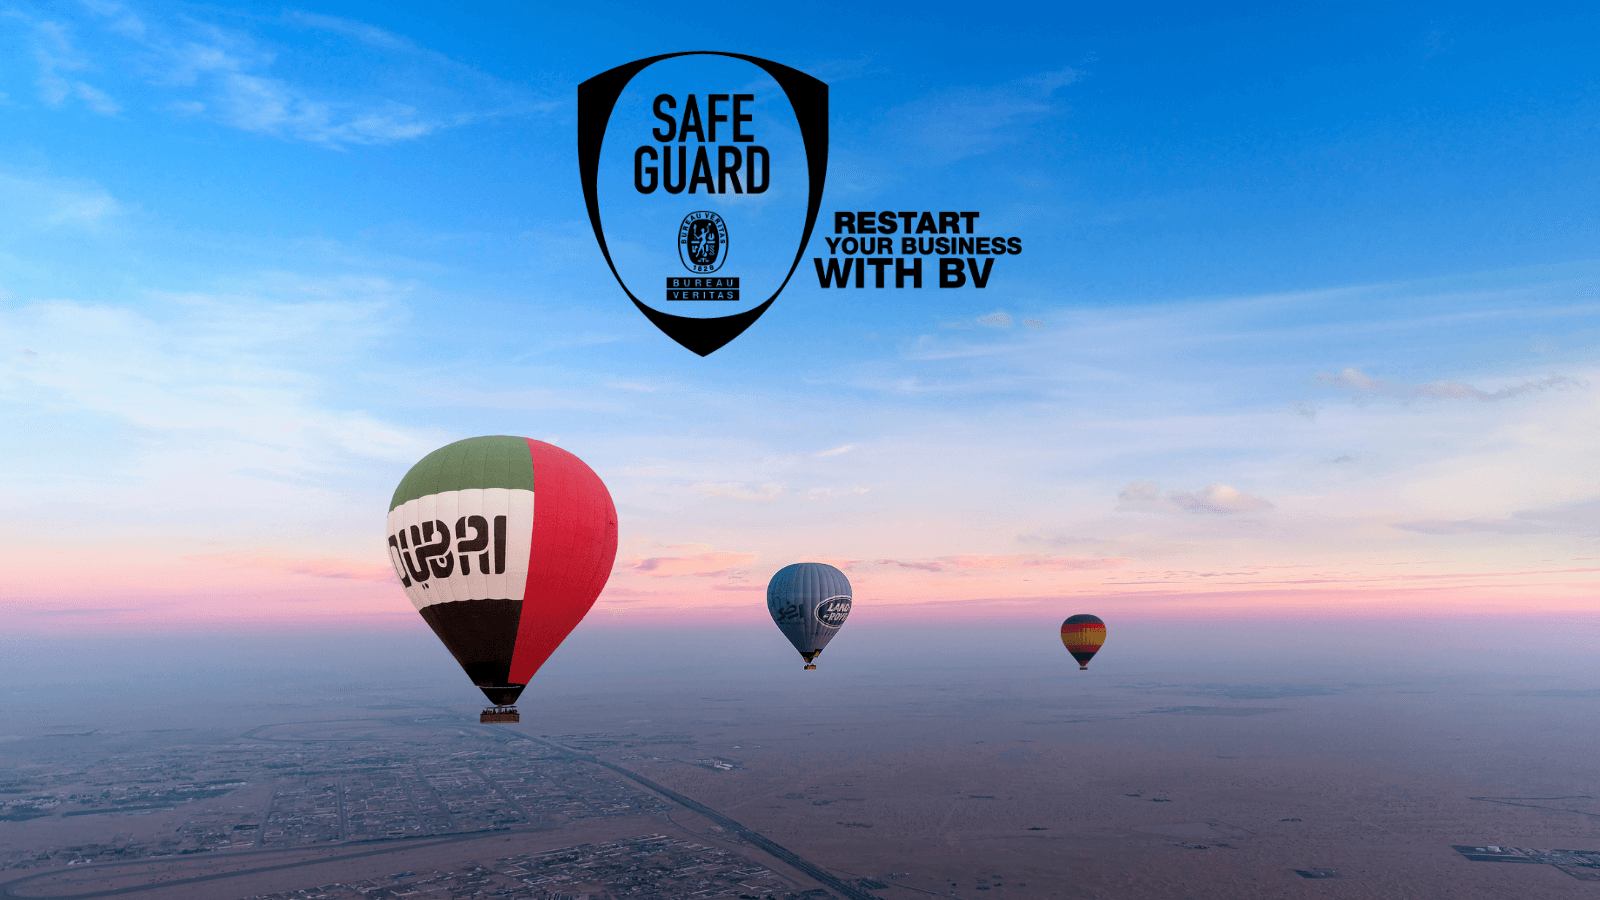 Bureau Veritas Safe Hot Air Balloon Company Dubai